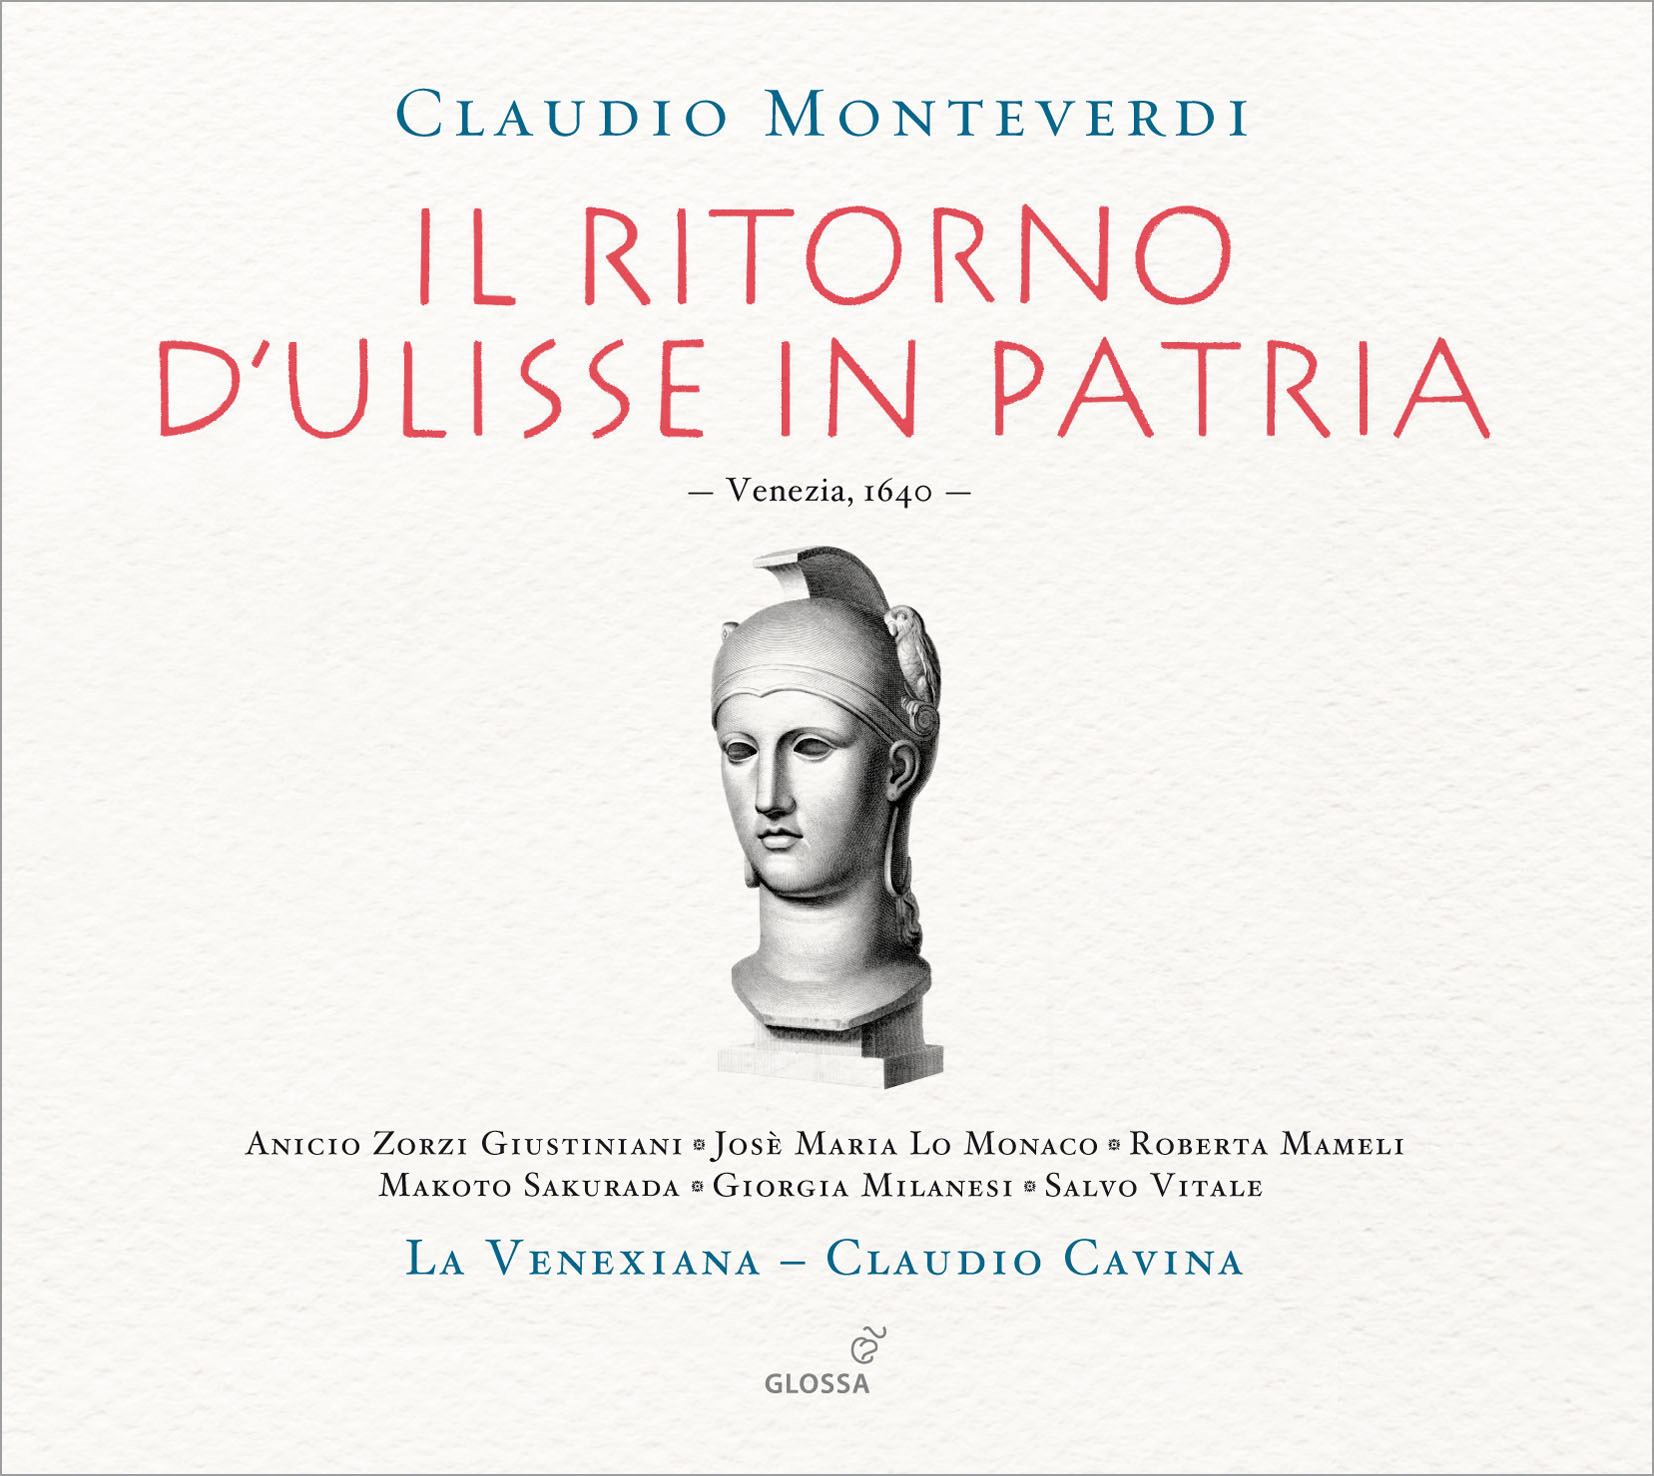 essays on claudio monteverdi Free college essay monteverdi monteverdi, claudio giovanni antonio (1567-1643), italian composer, the most important figure in the transition from renaissance to.